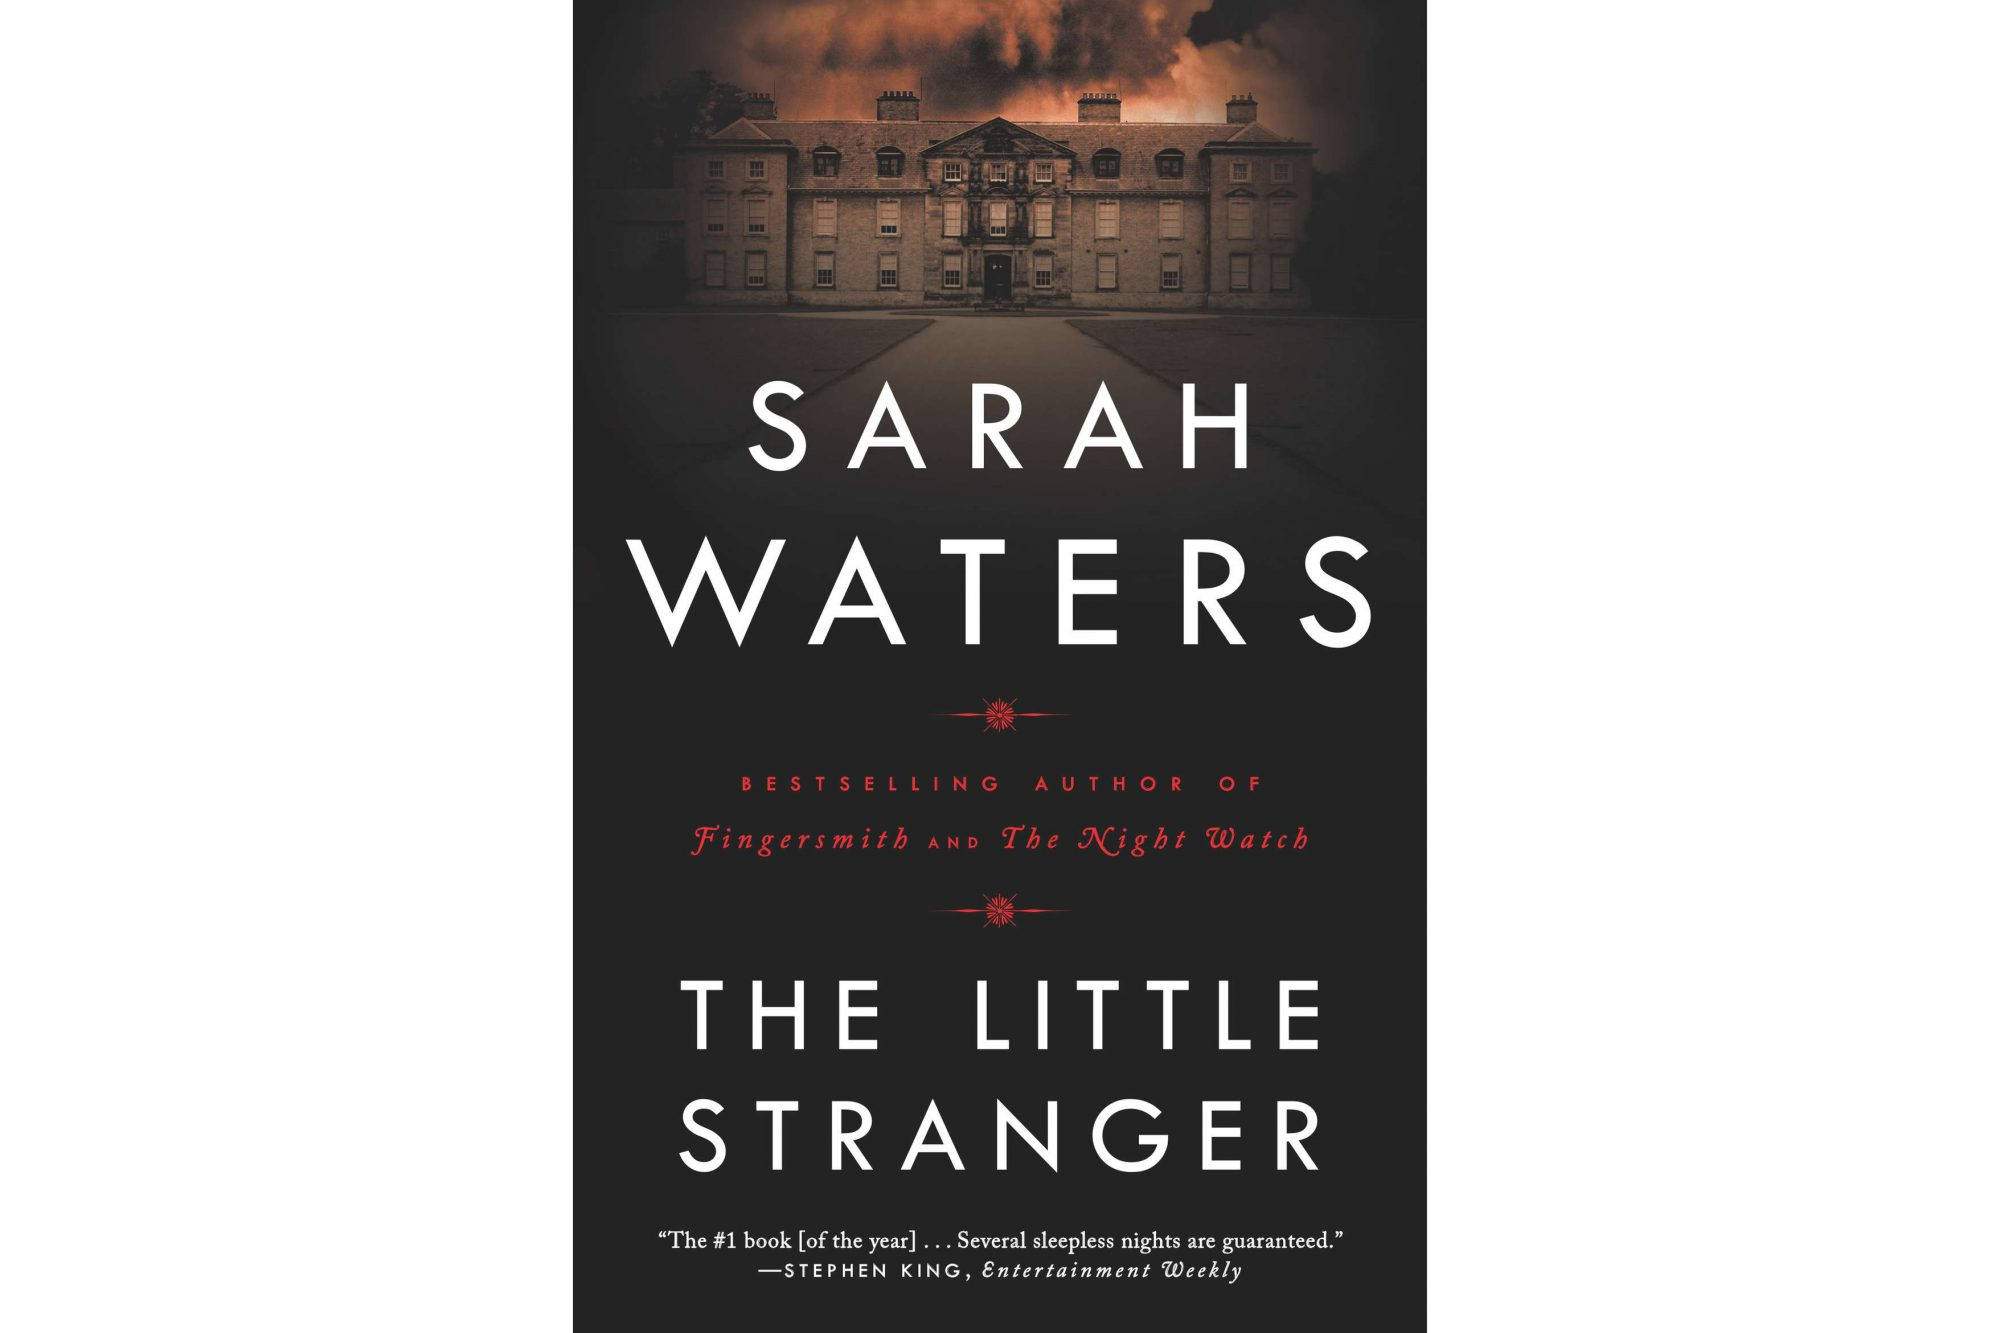 The Little Stranger, by Sarah Waters